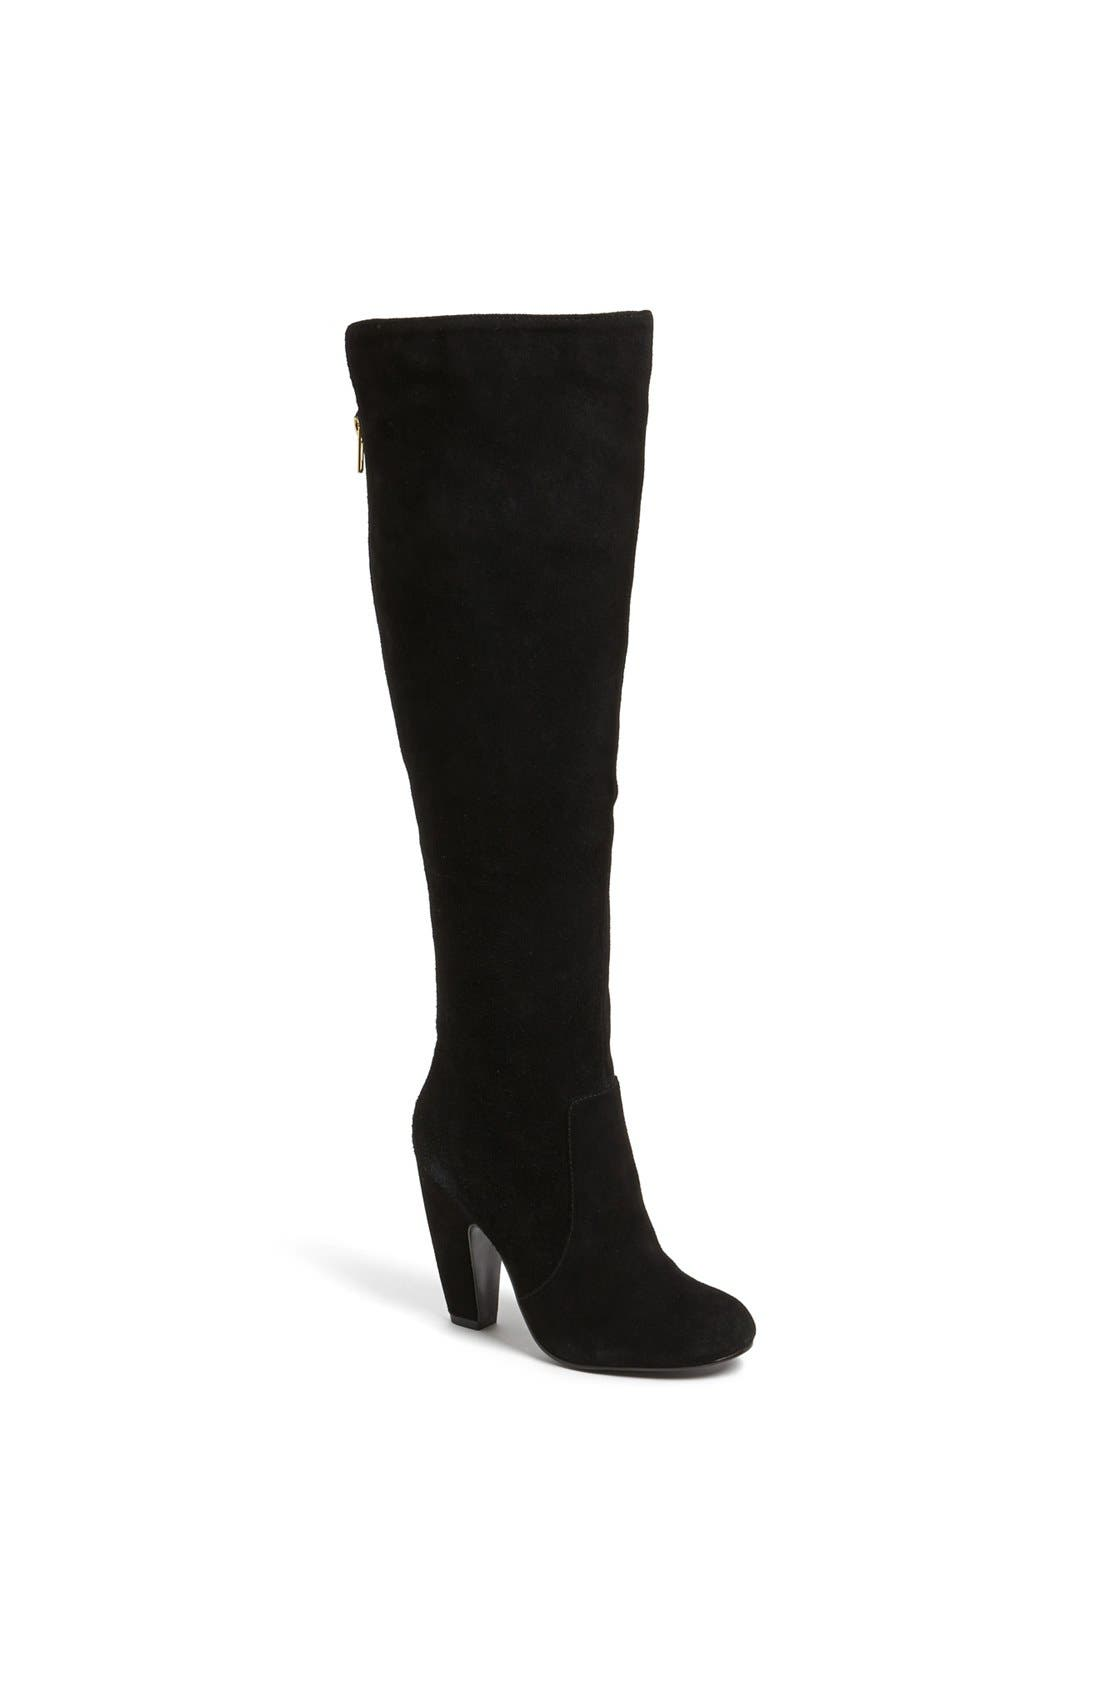 Main Image - Steve Madden 'Priscila' Knee High Suede Boot